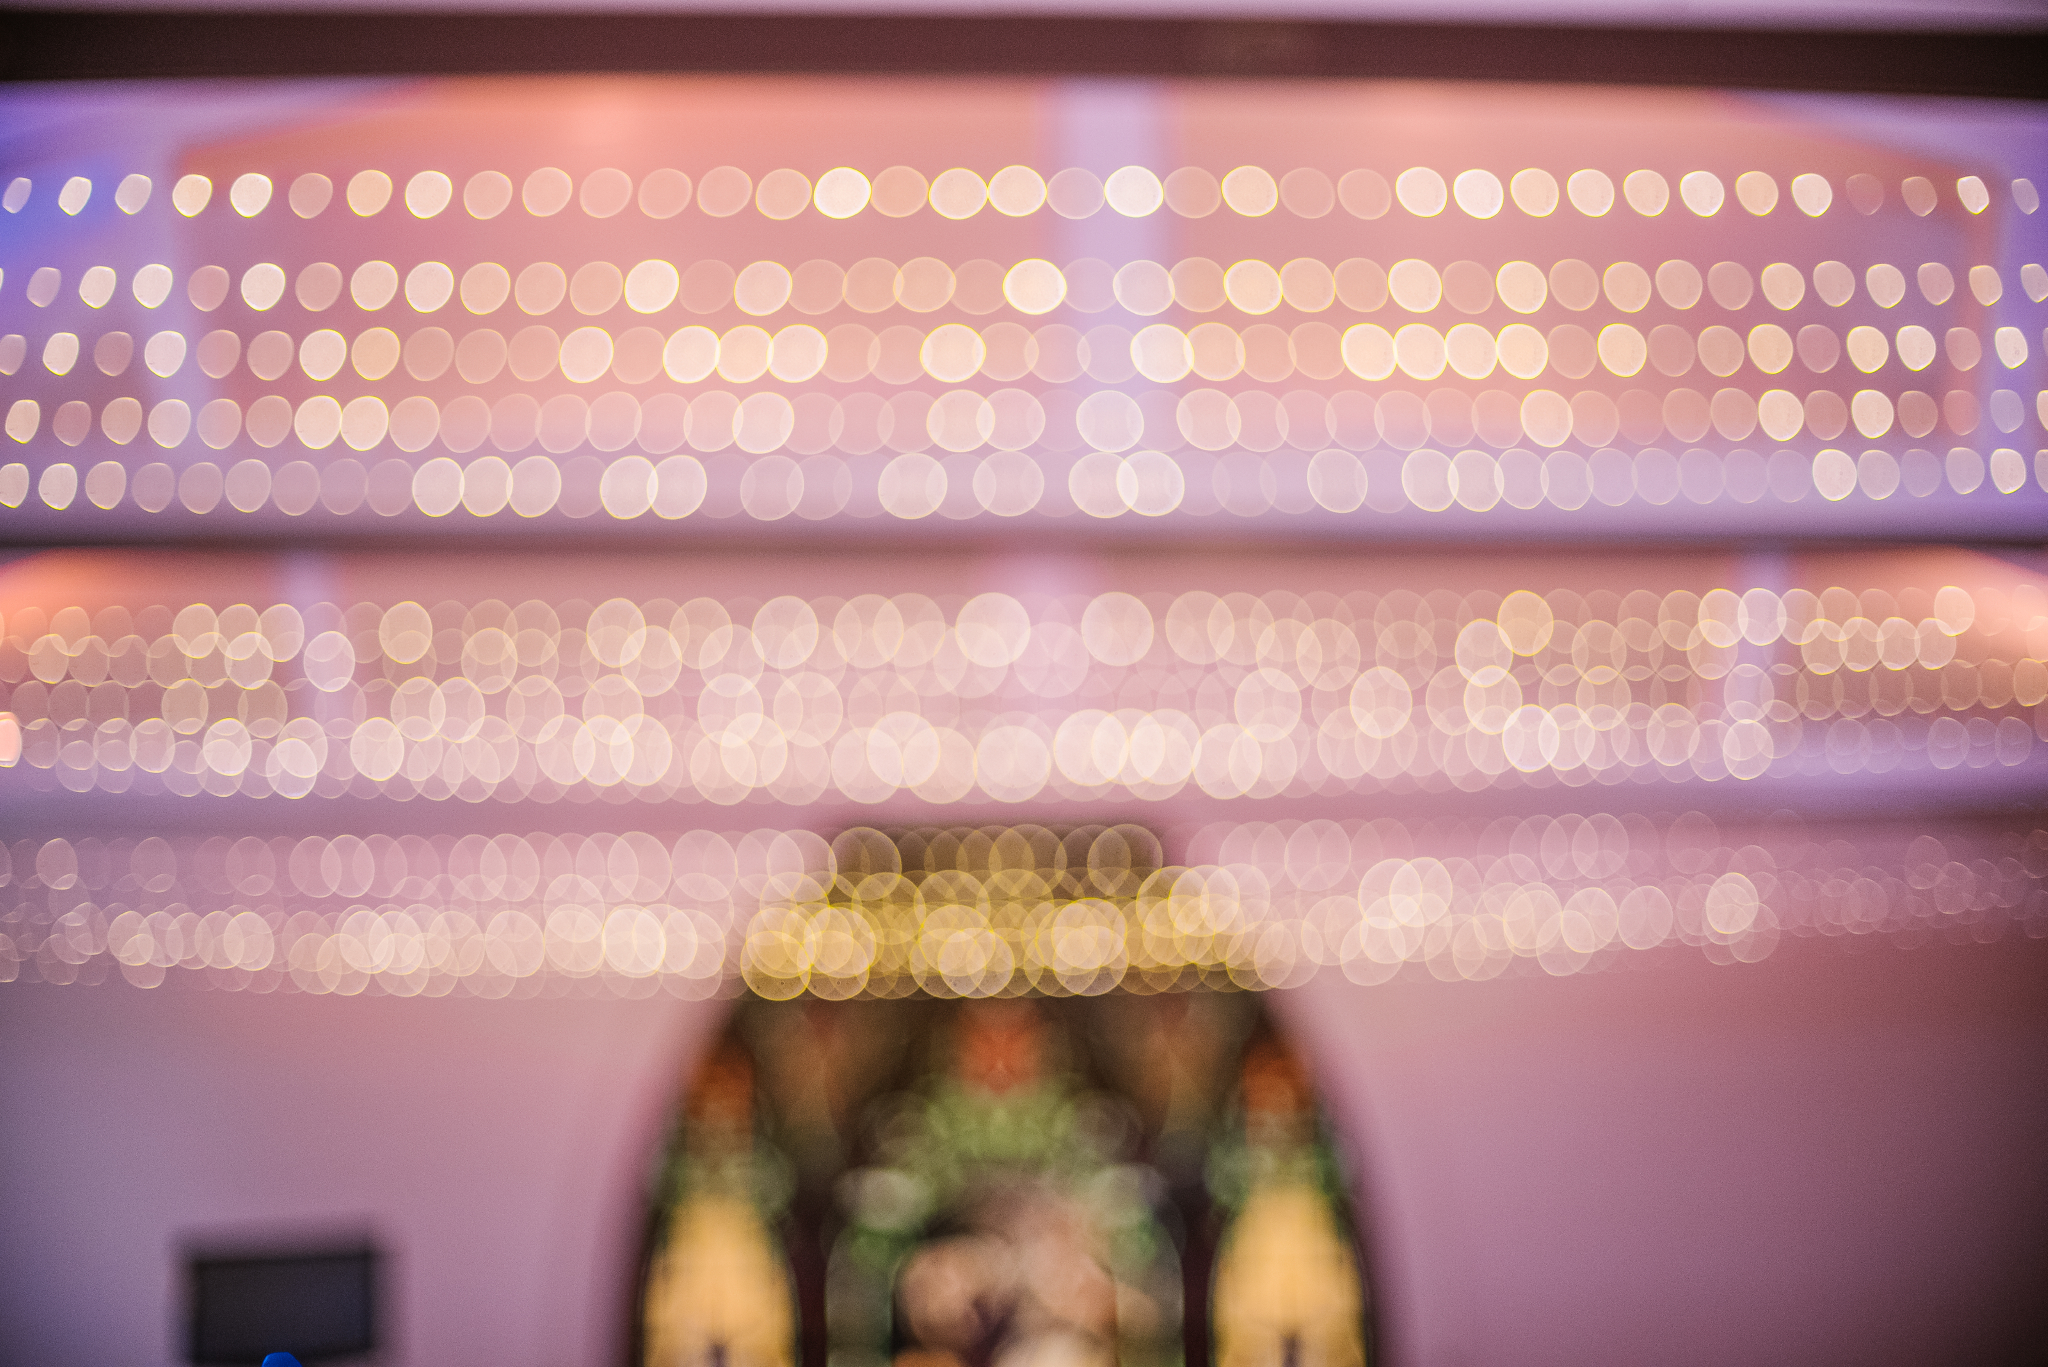 san diego wedding   photographer   blurred picture of lighting